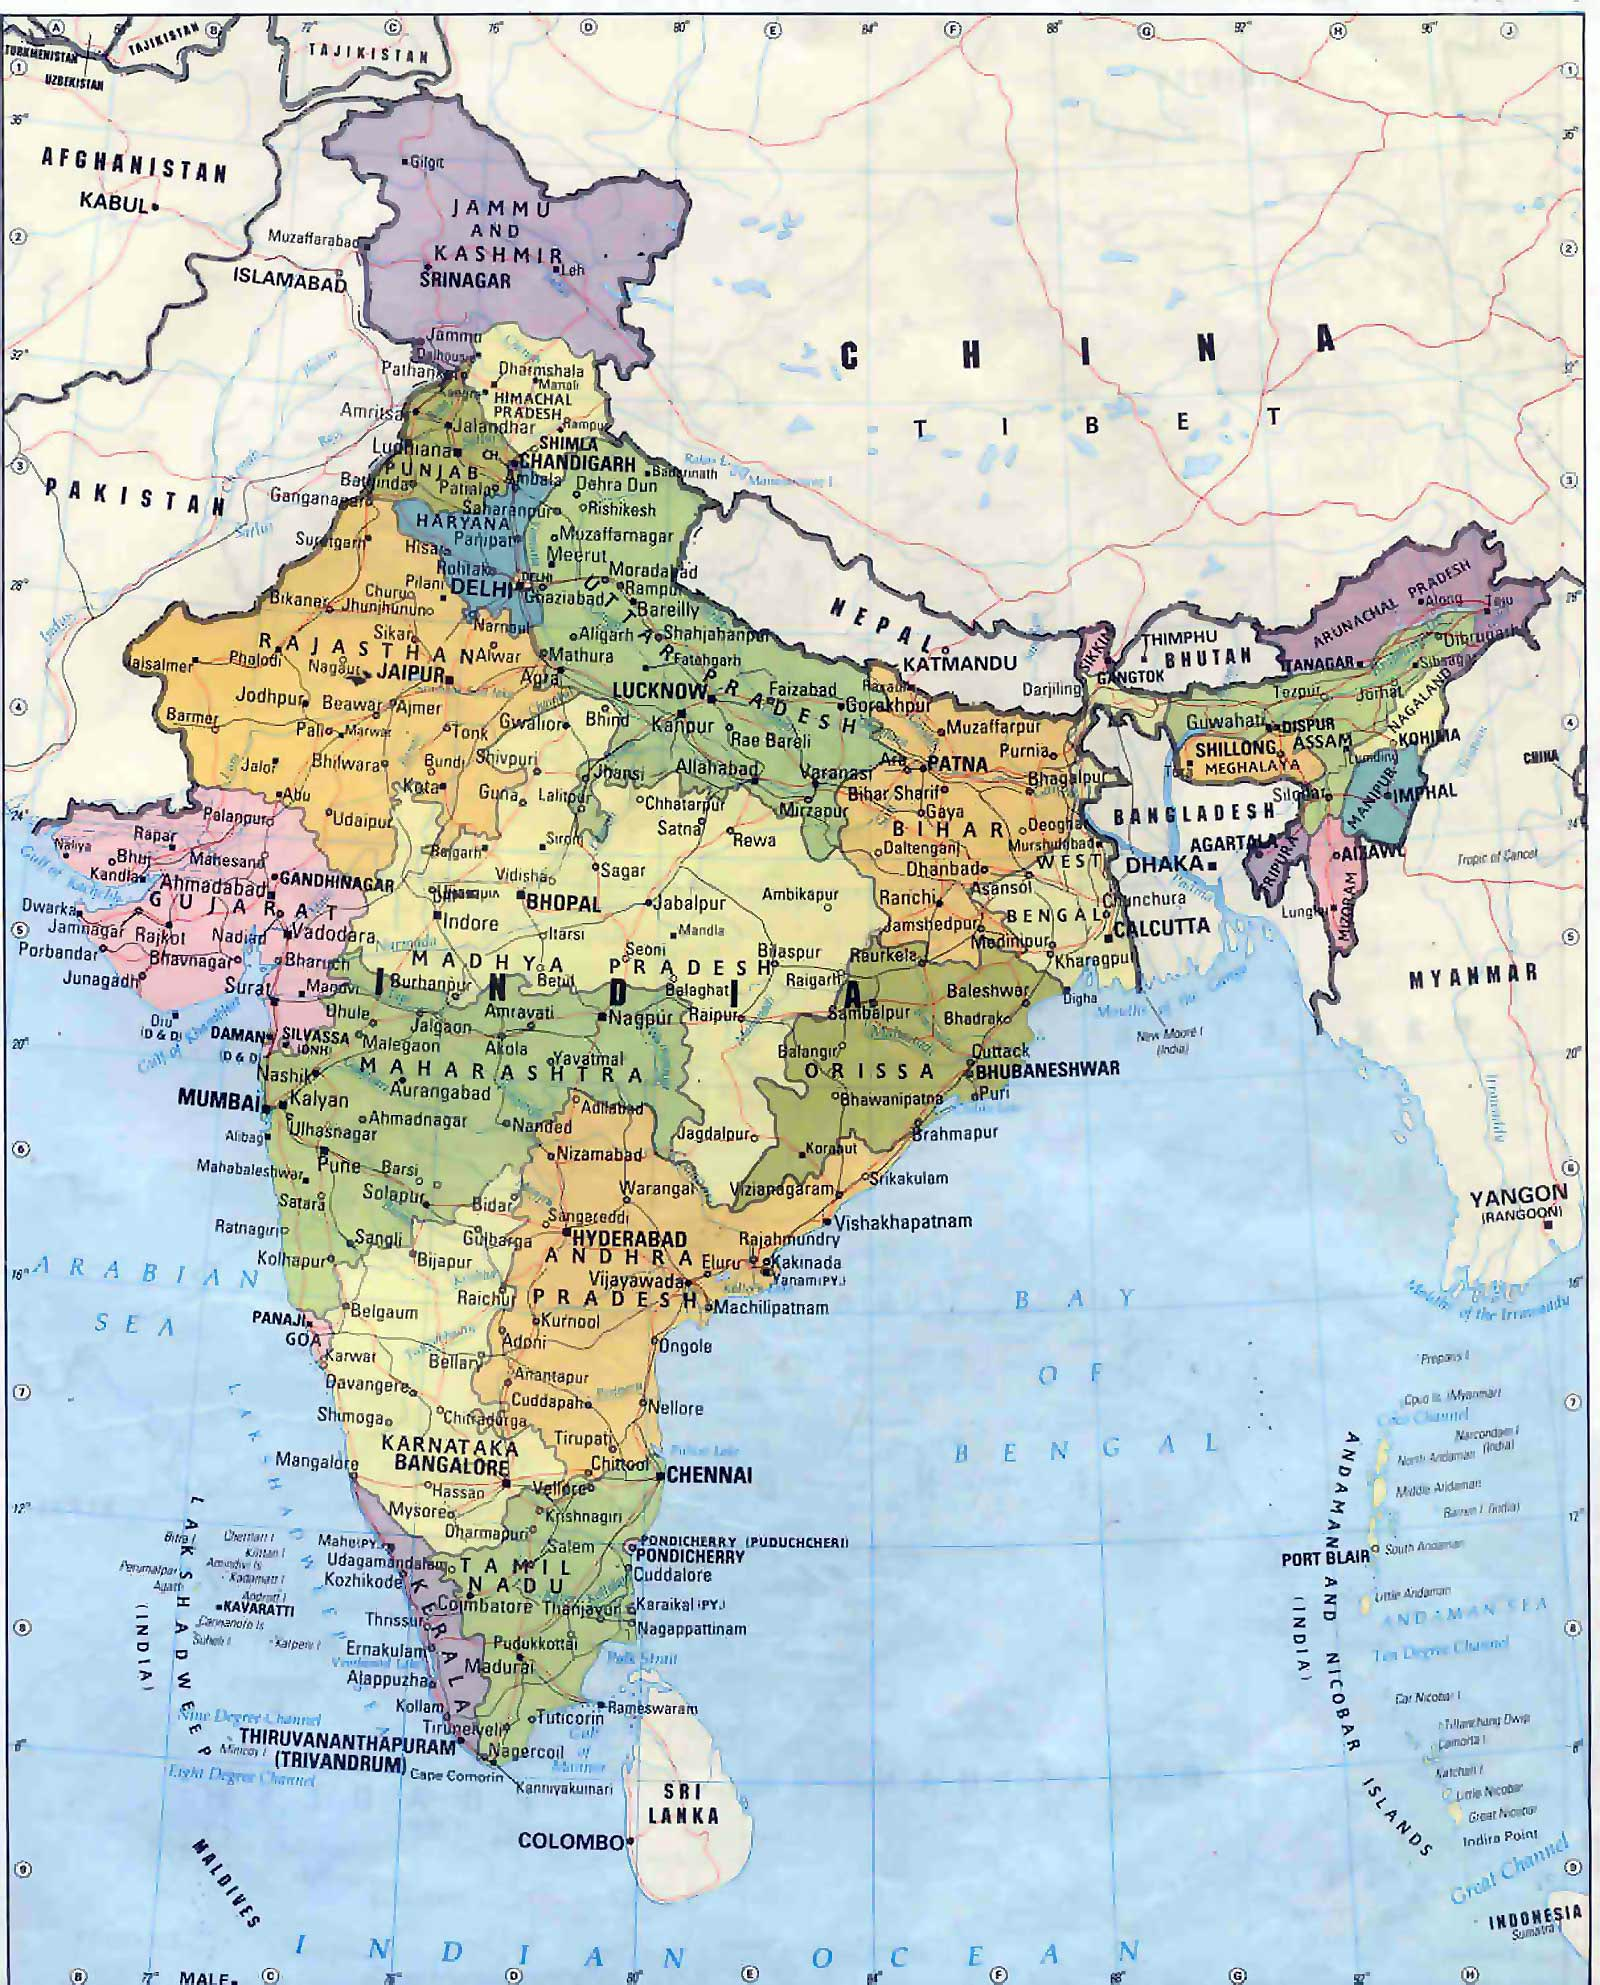 India Maps | Printable Maps of India for Download on visakhapatnam india map, india political map, danish india map, maharashtra india map, kannauj india map, asia india map, hindi india map, rajasthan india map, guarani india map, nepali india map, pradesh india map, bangla india map, tamil india map, kannada india map, portuguese india map, dutch india map, hyderabad india map, kerala india map, chennai india map, india the early cultures map,